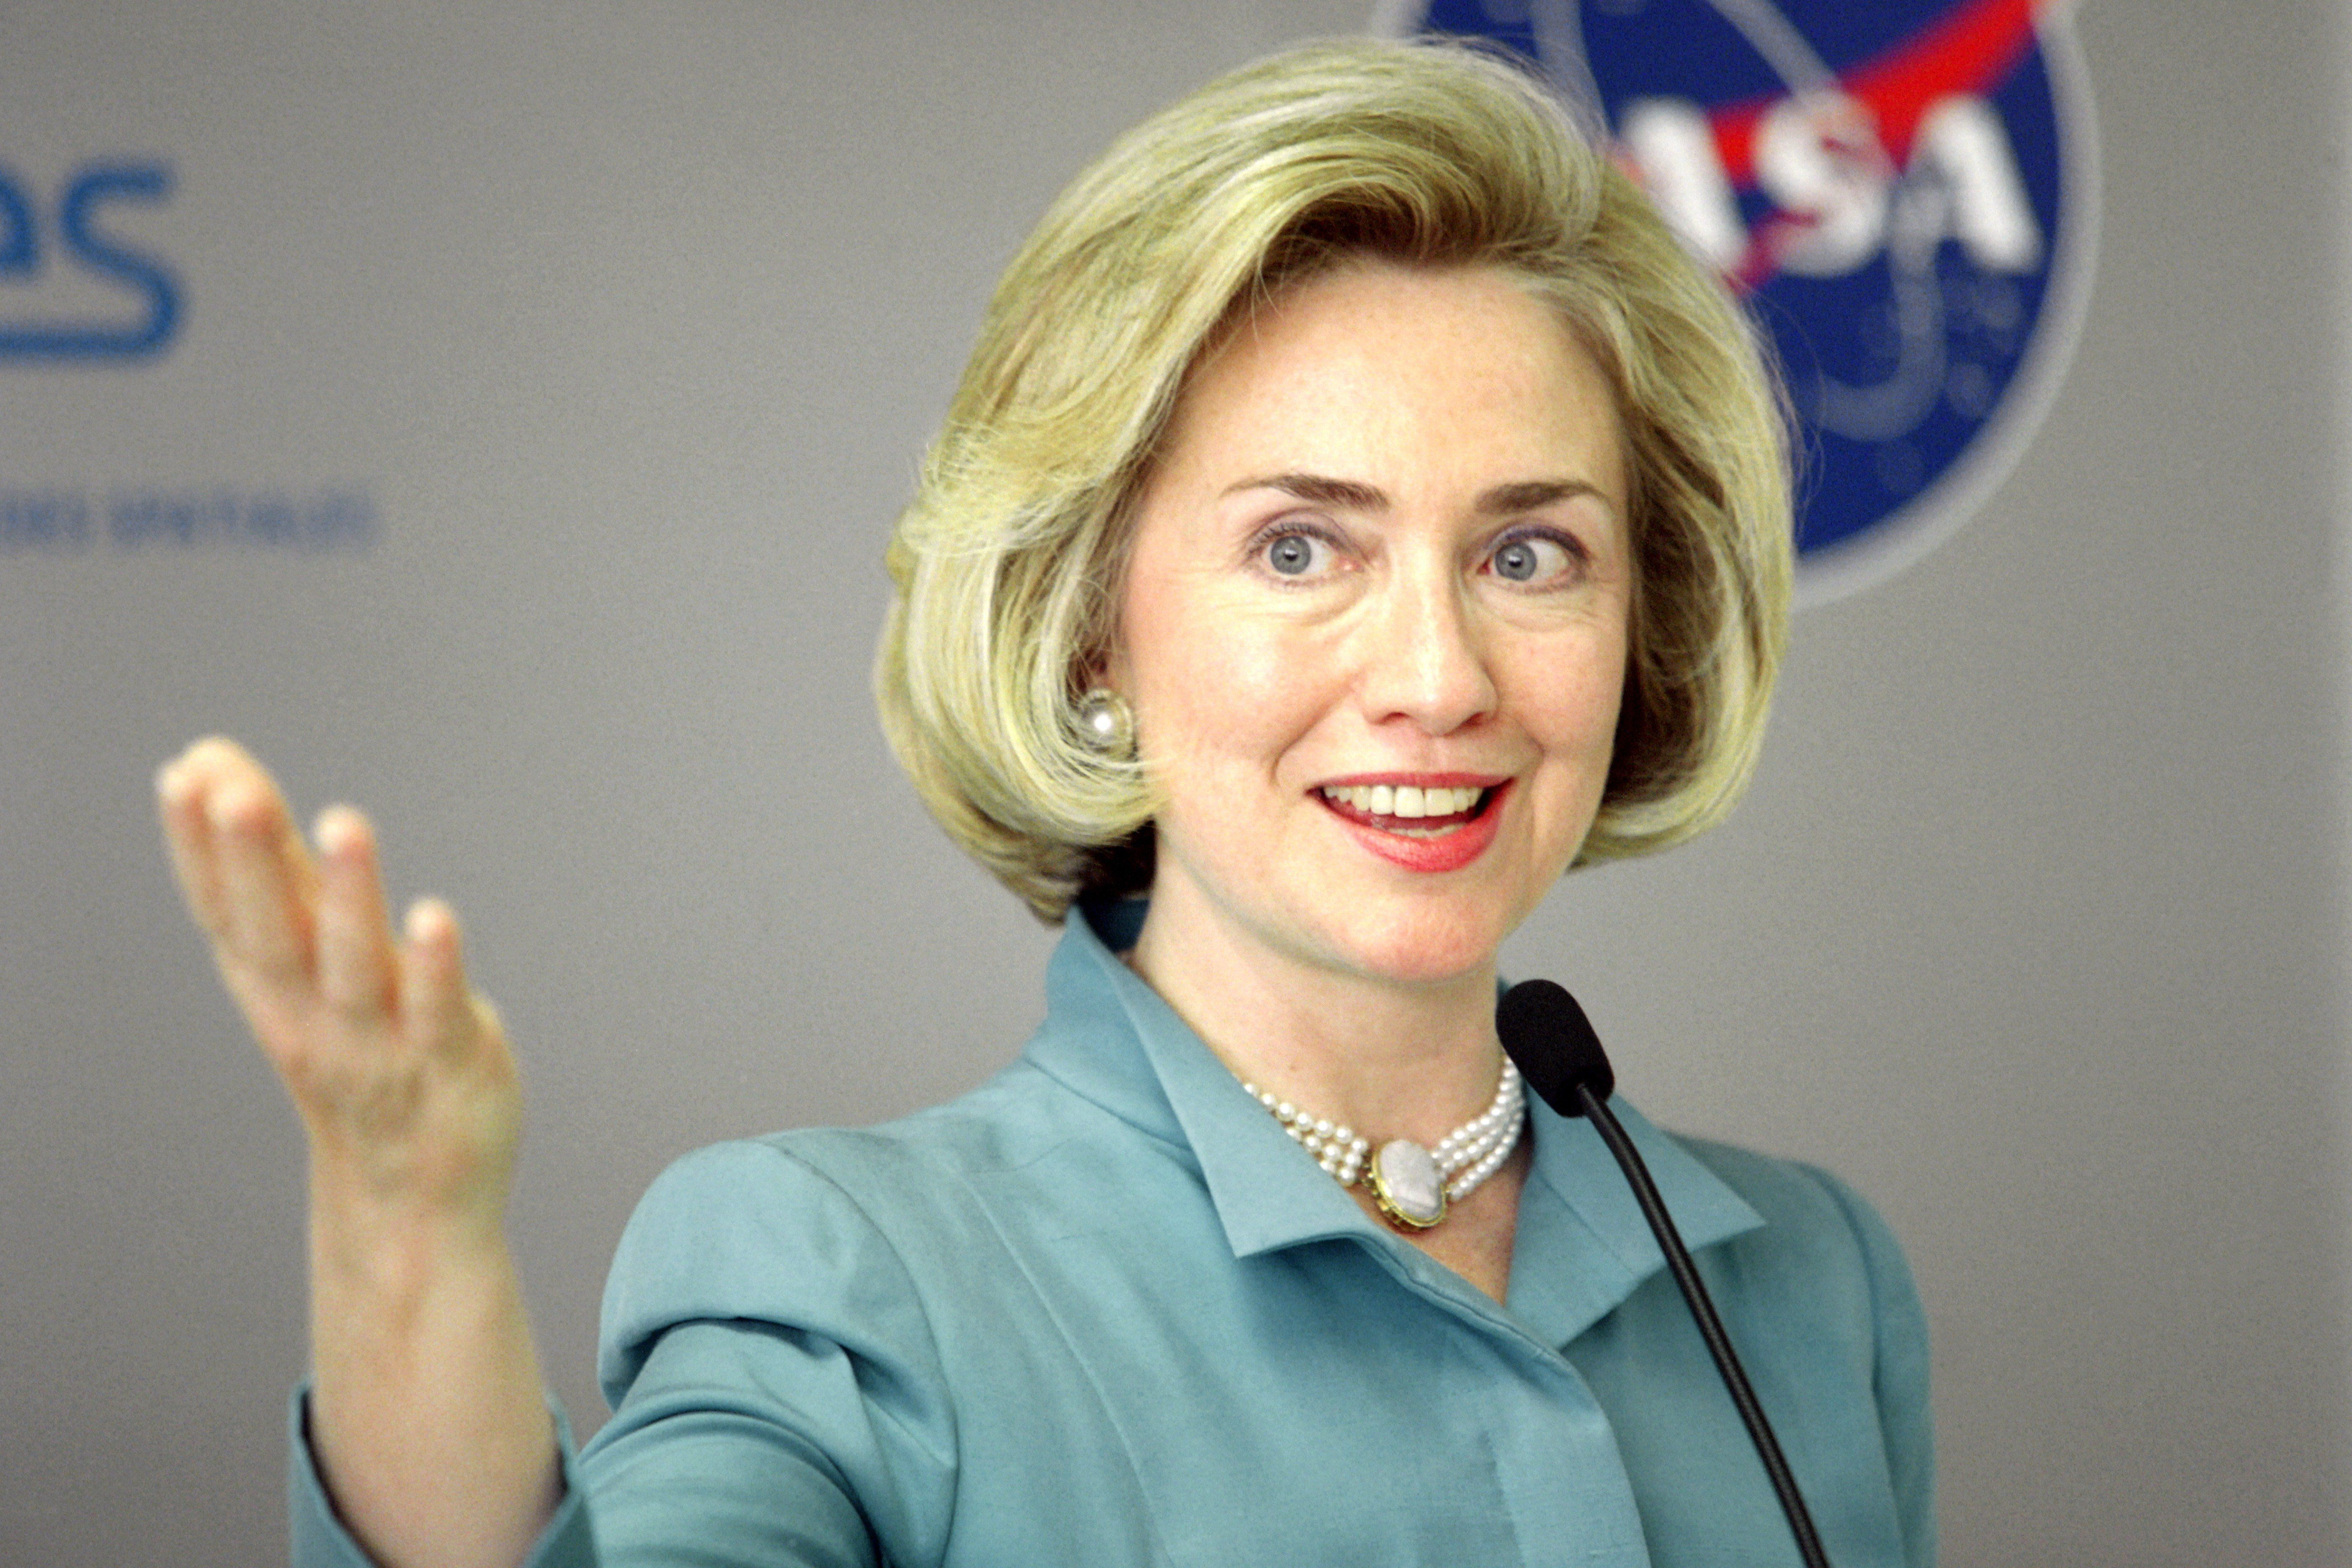 Then-first lady Hillary Clinton in May 1998, a period of booming job growth. Clinton has said she would strive to recreate th